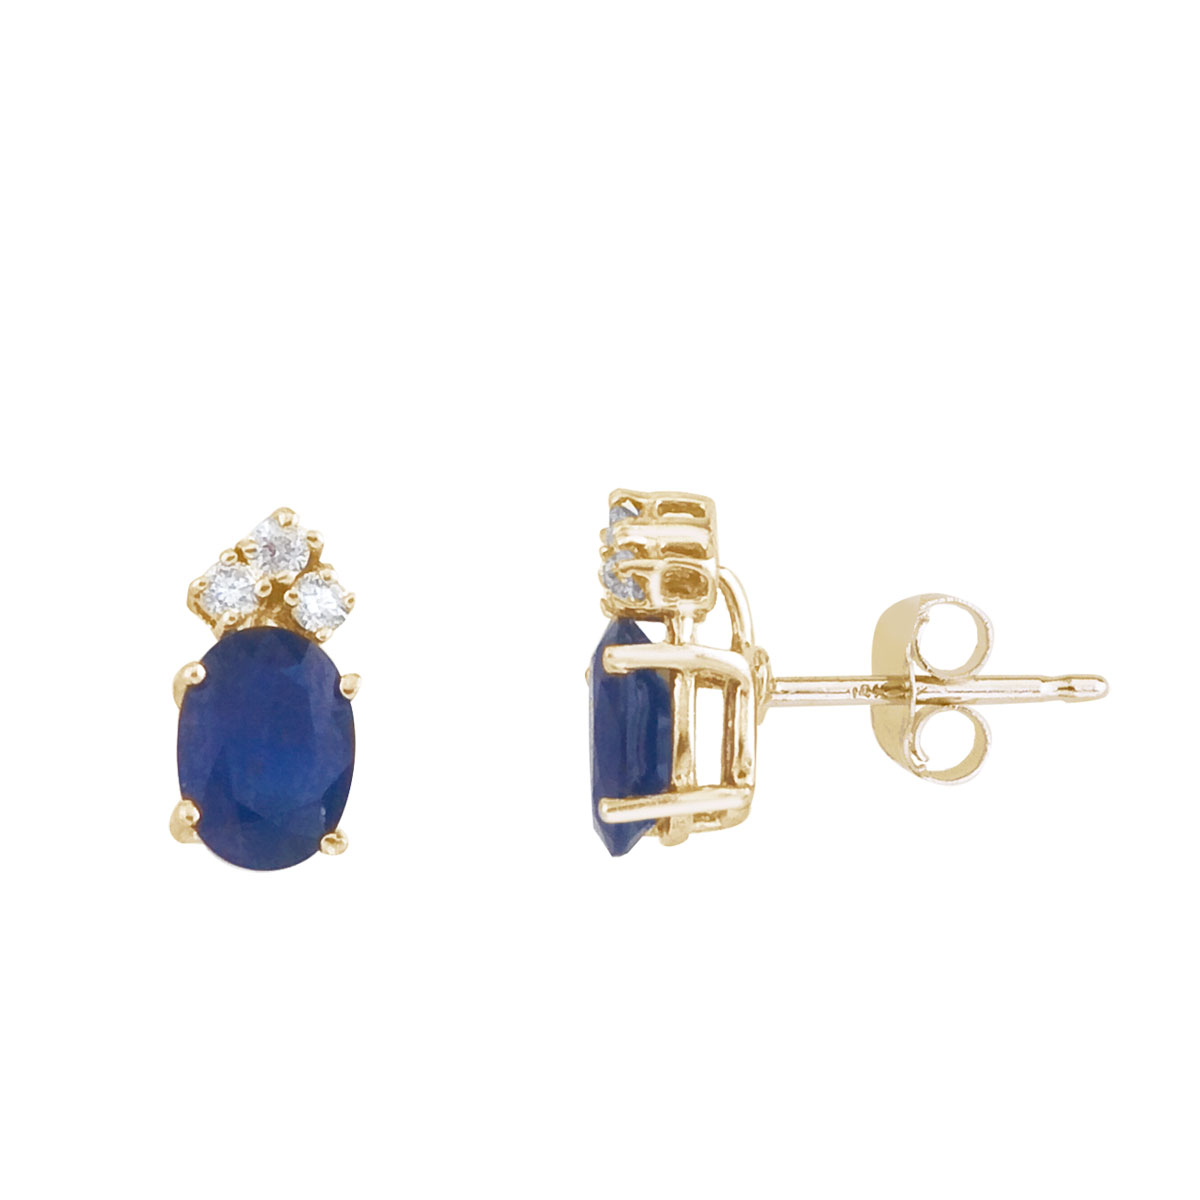 These 7x5 mm oval shaped sapphire earrings are set in beautiful 14k yellow gold and feature .12 t...